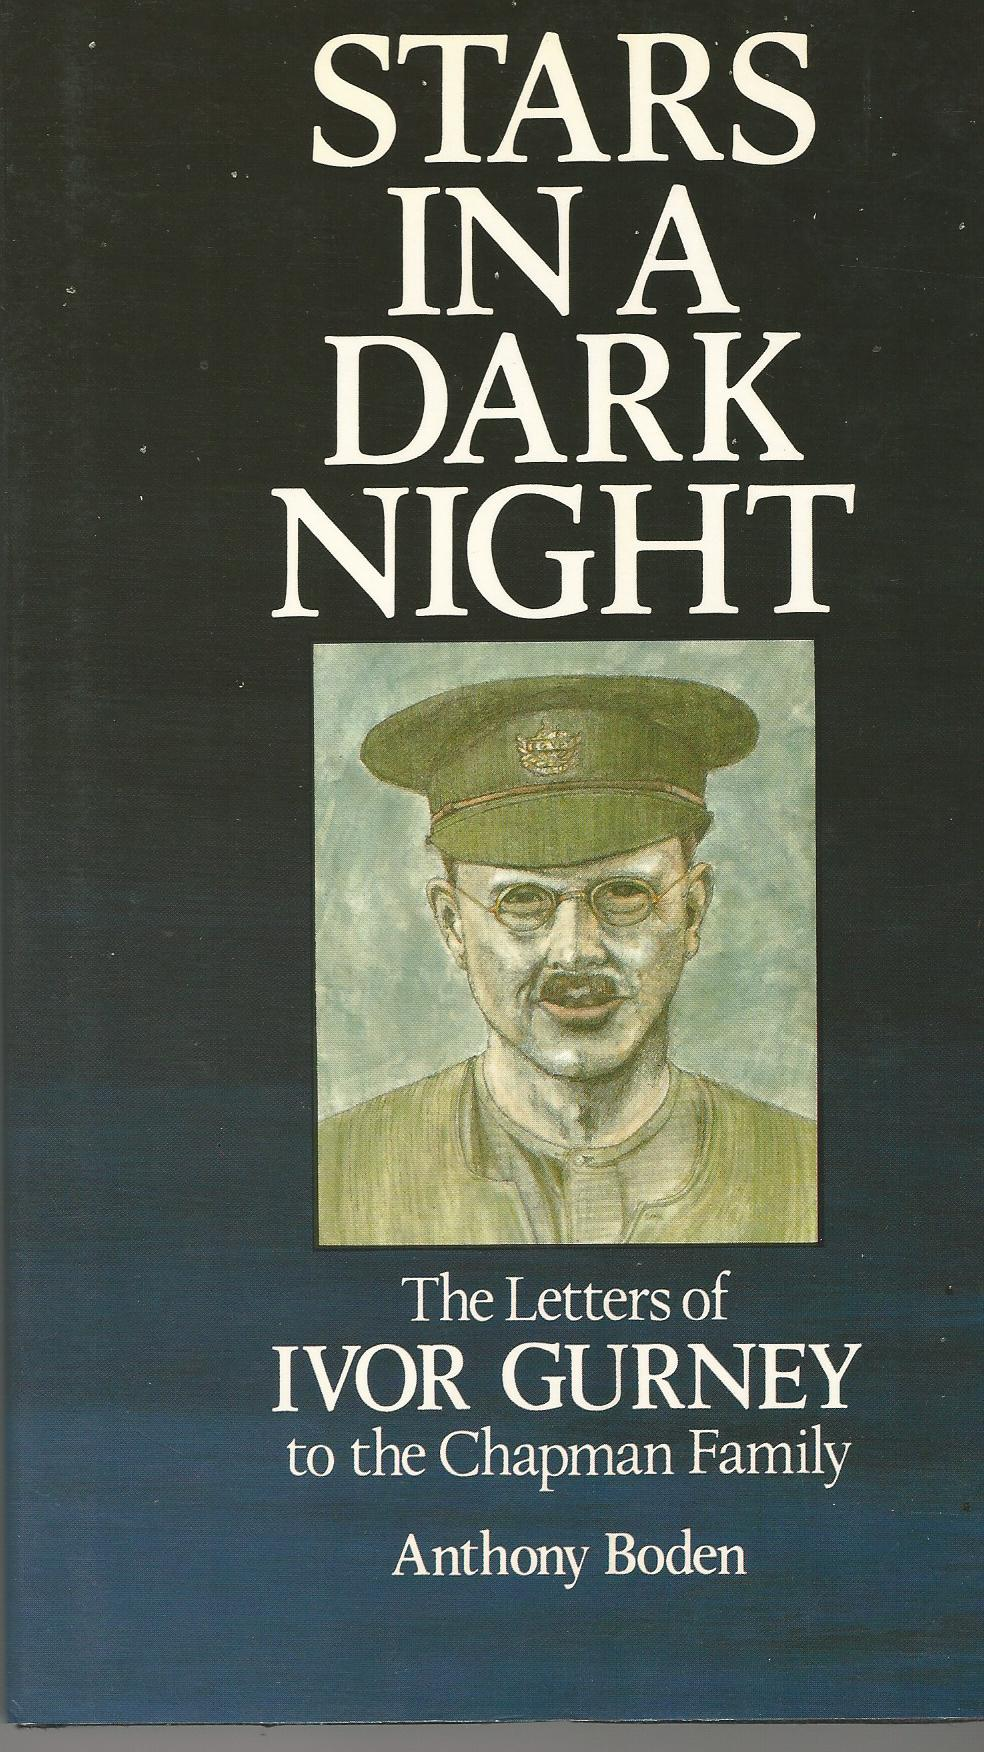 Image for Stars in a dark night: The letters of Ivor Gurney to the Chapman Family.